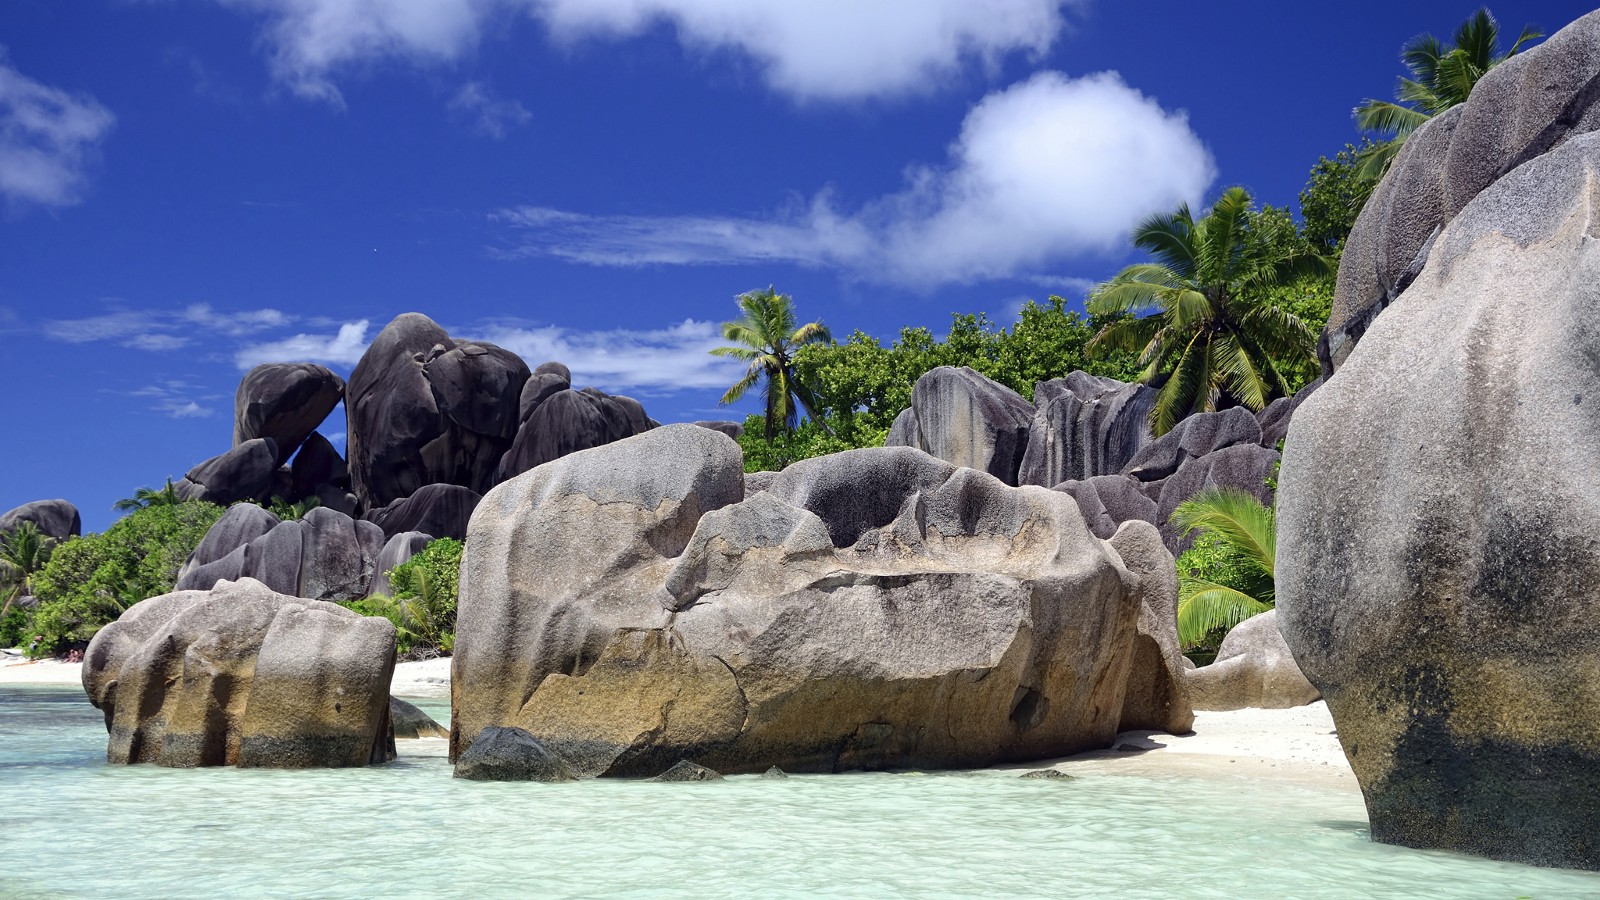 Seychelles seascape in the Indian Ocean